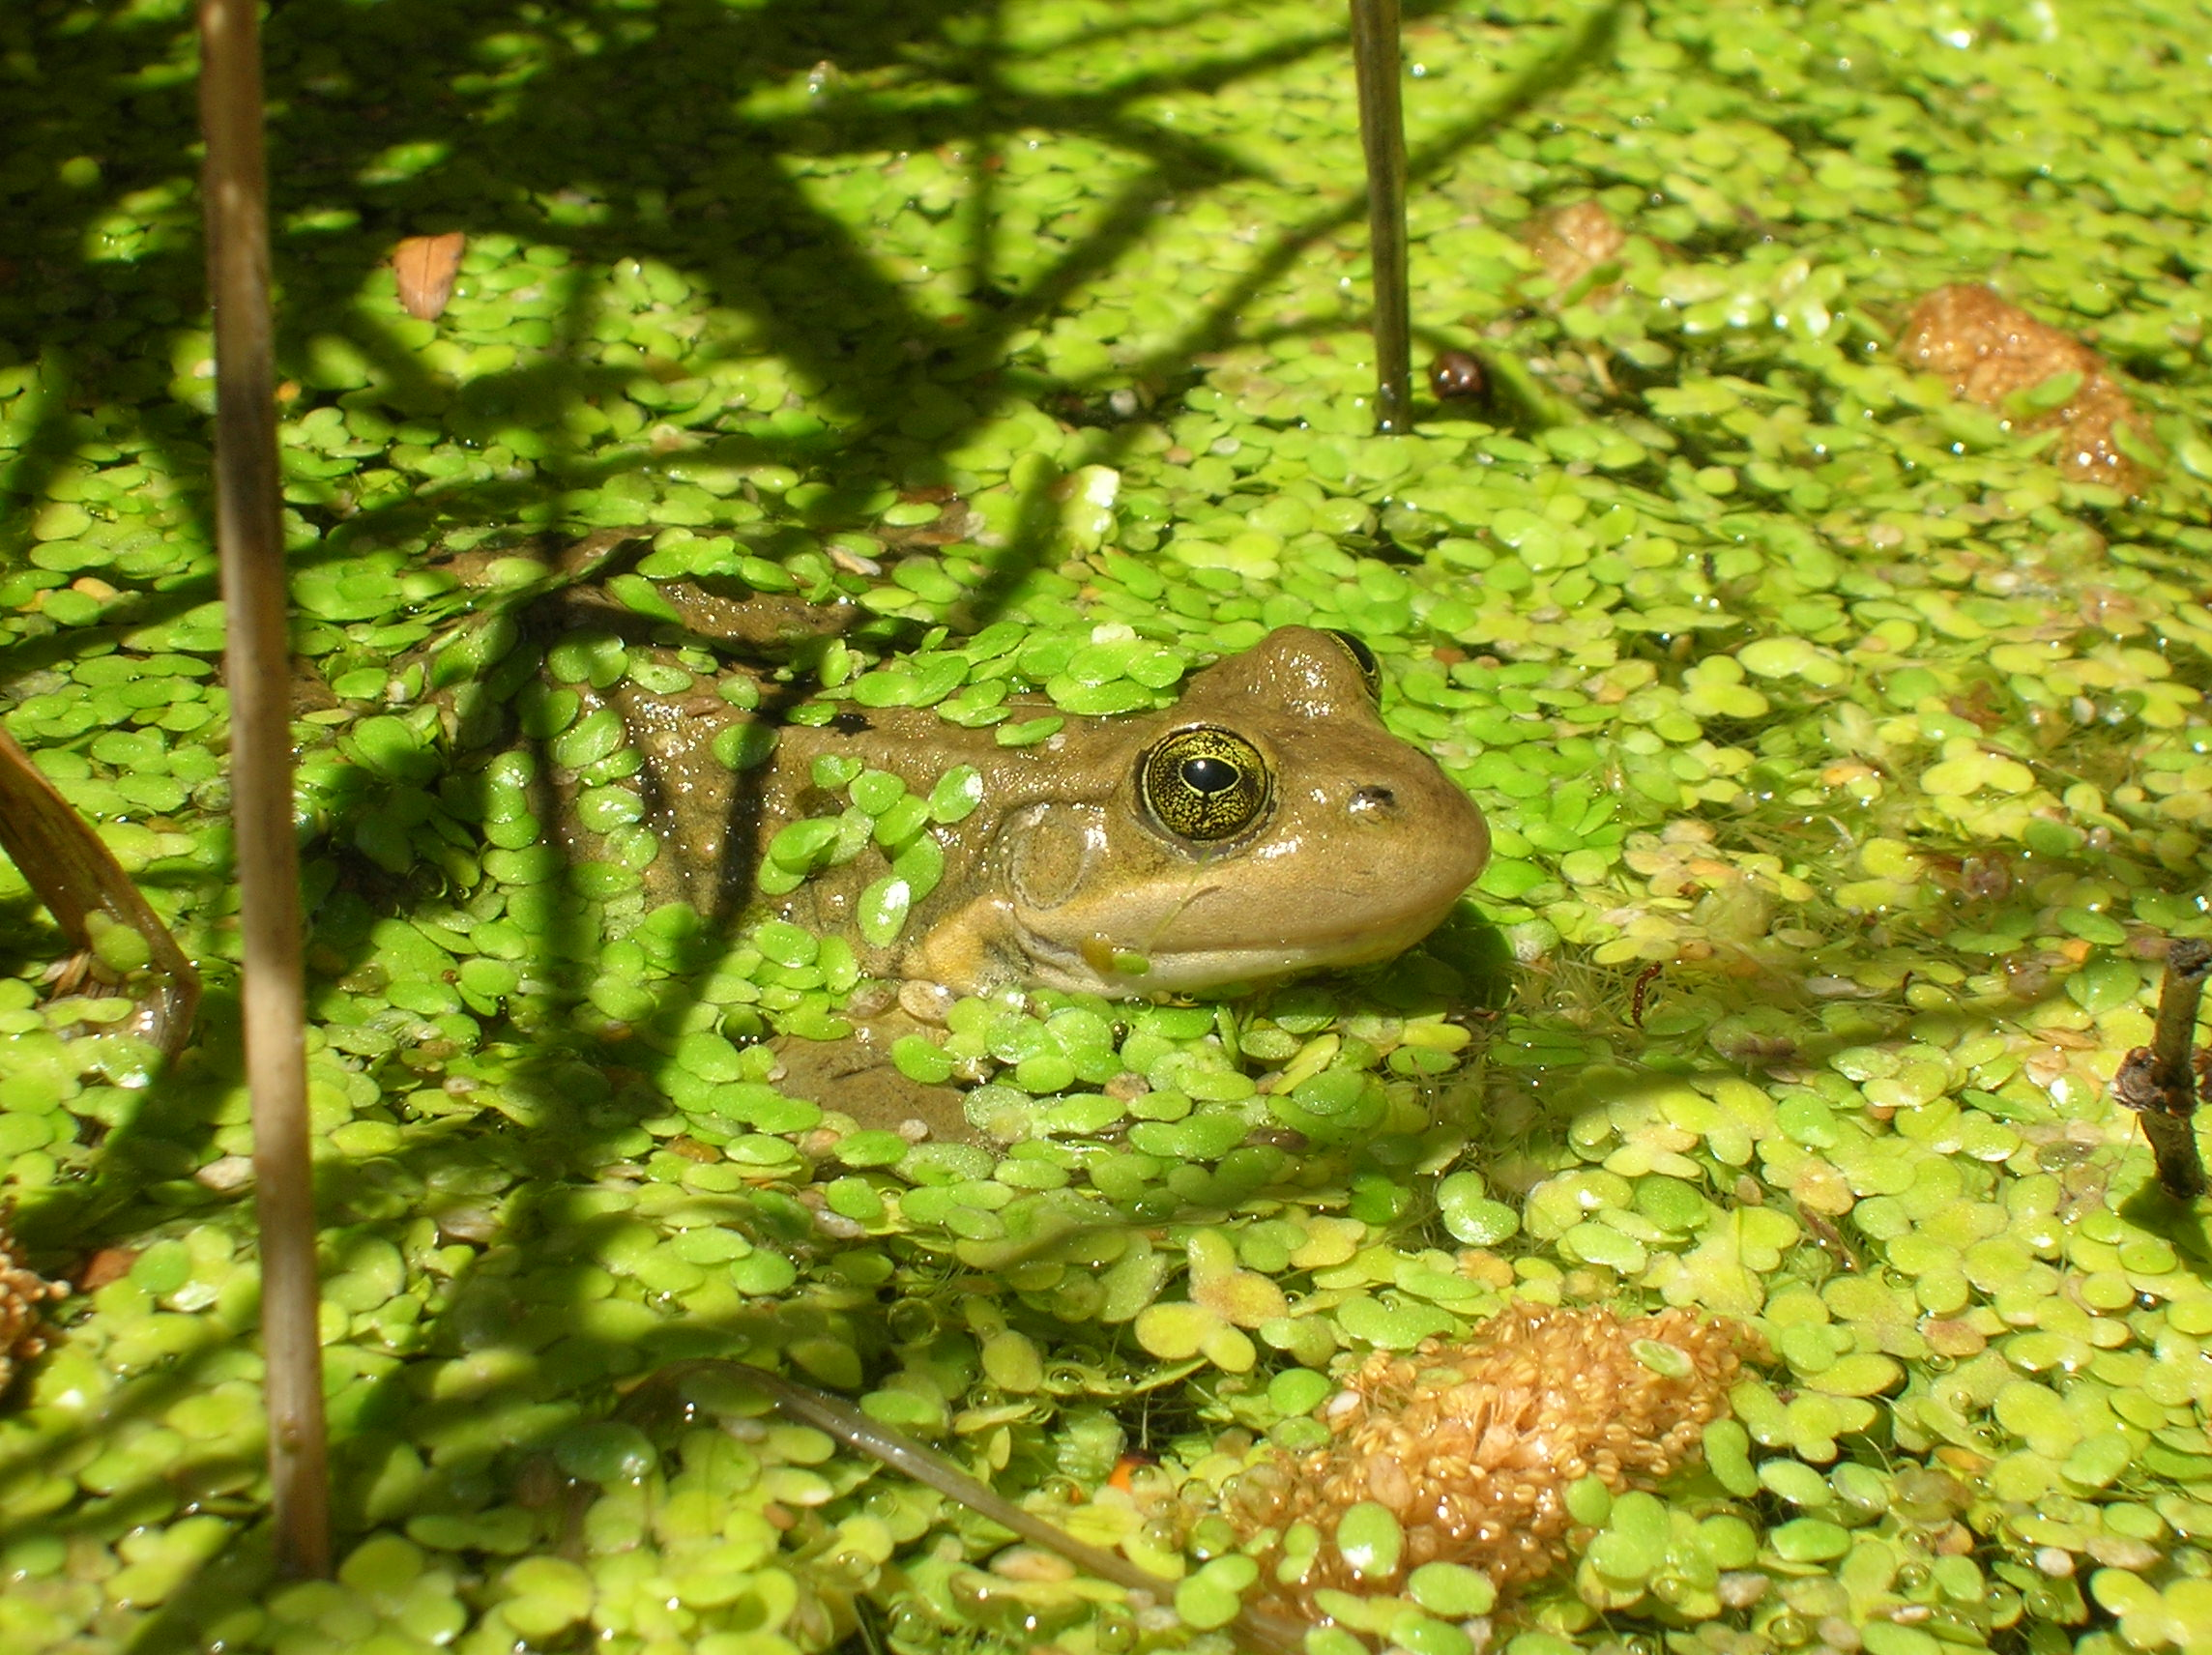 utah division of wildlife resources a focus on frogs